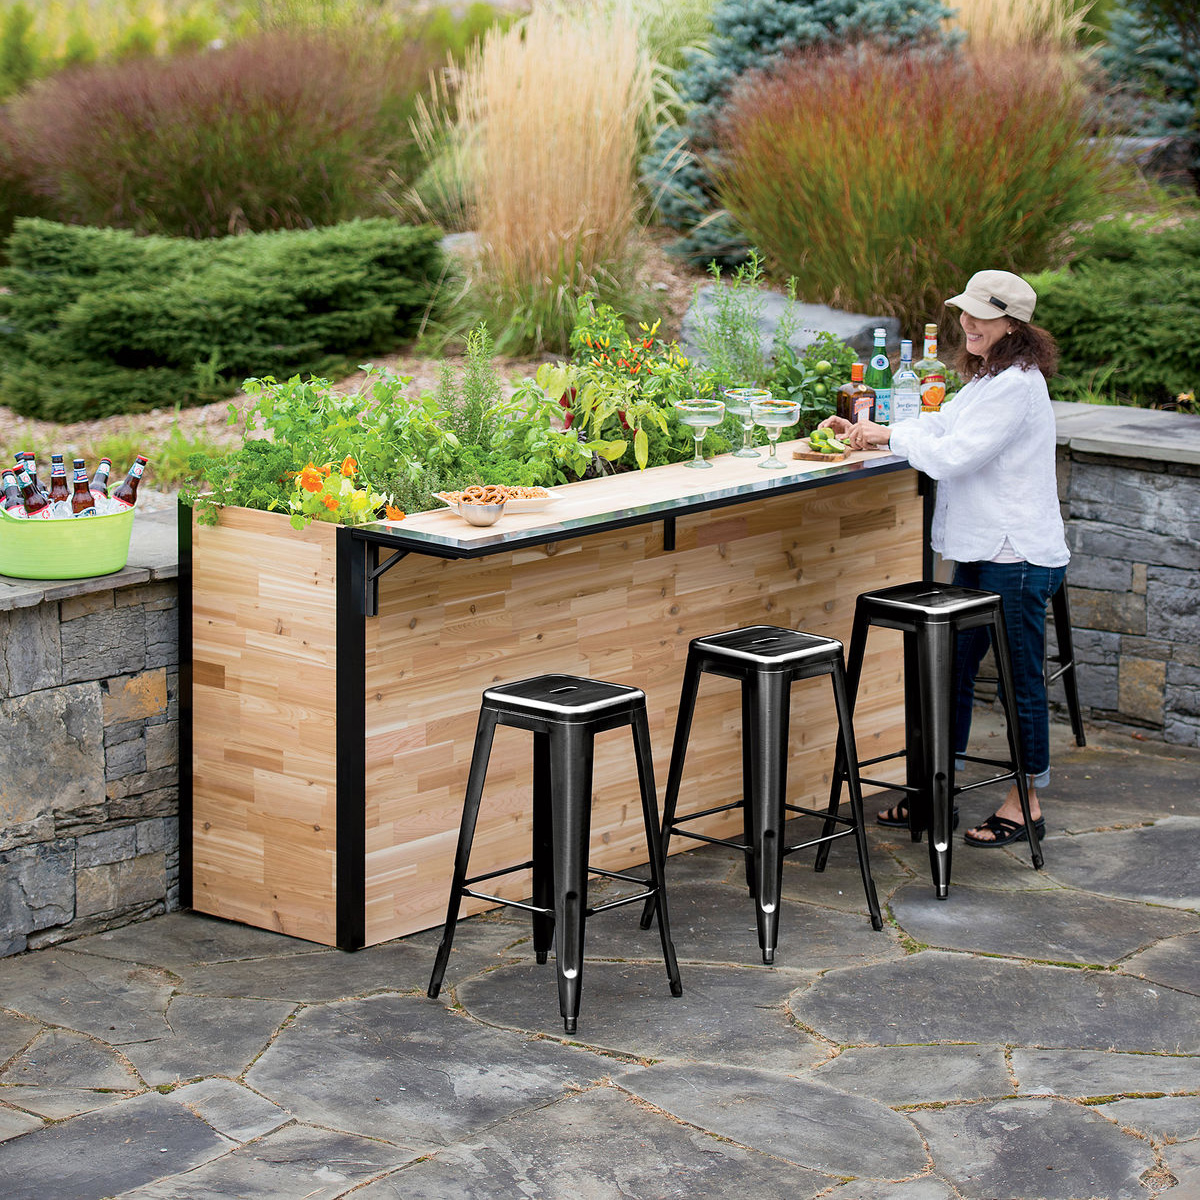 PlantABar  Wooden Outdoor Bar And Planter  The Green Head